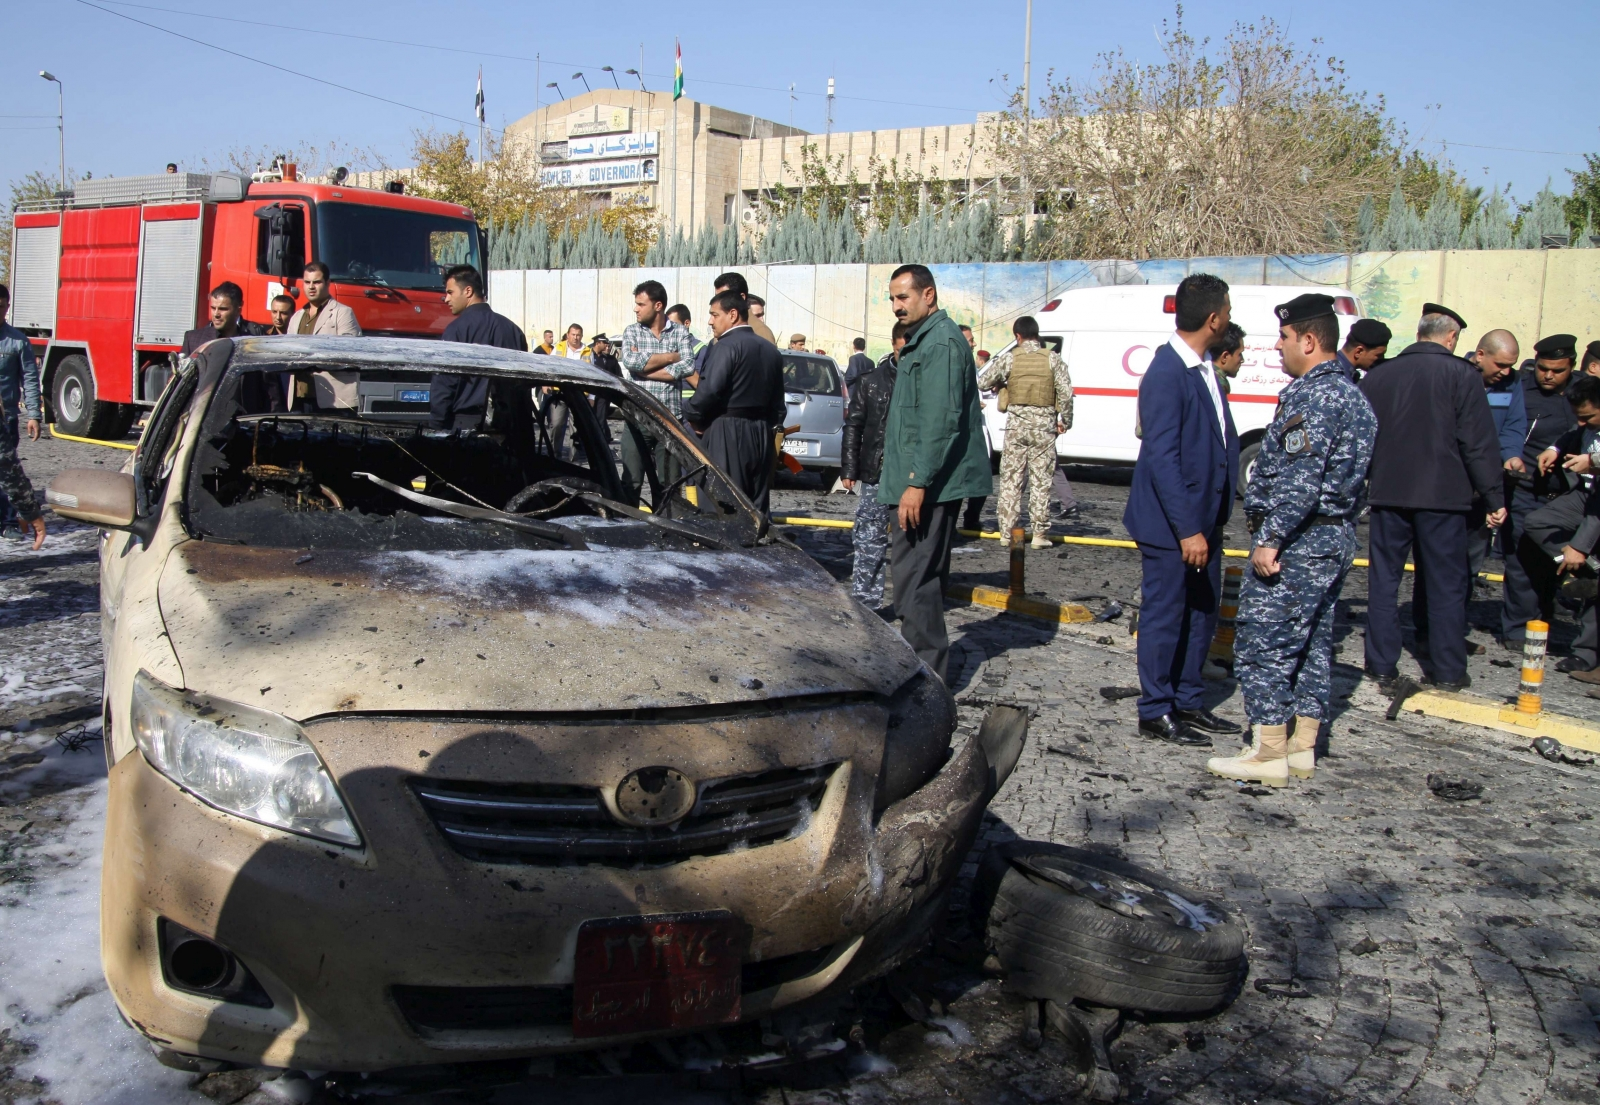 The aftermath of this morning's attack outside the governorate office in Erbil, in Kurdish Iraq. (Getty)